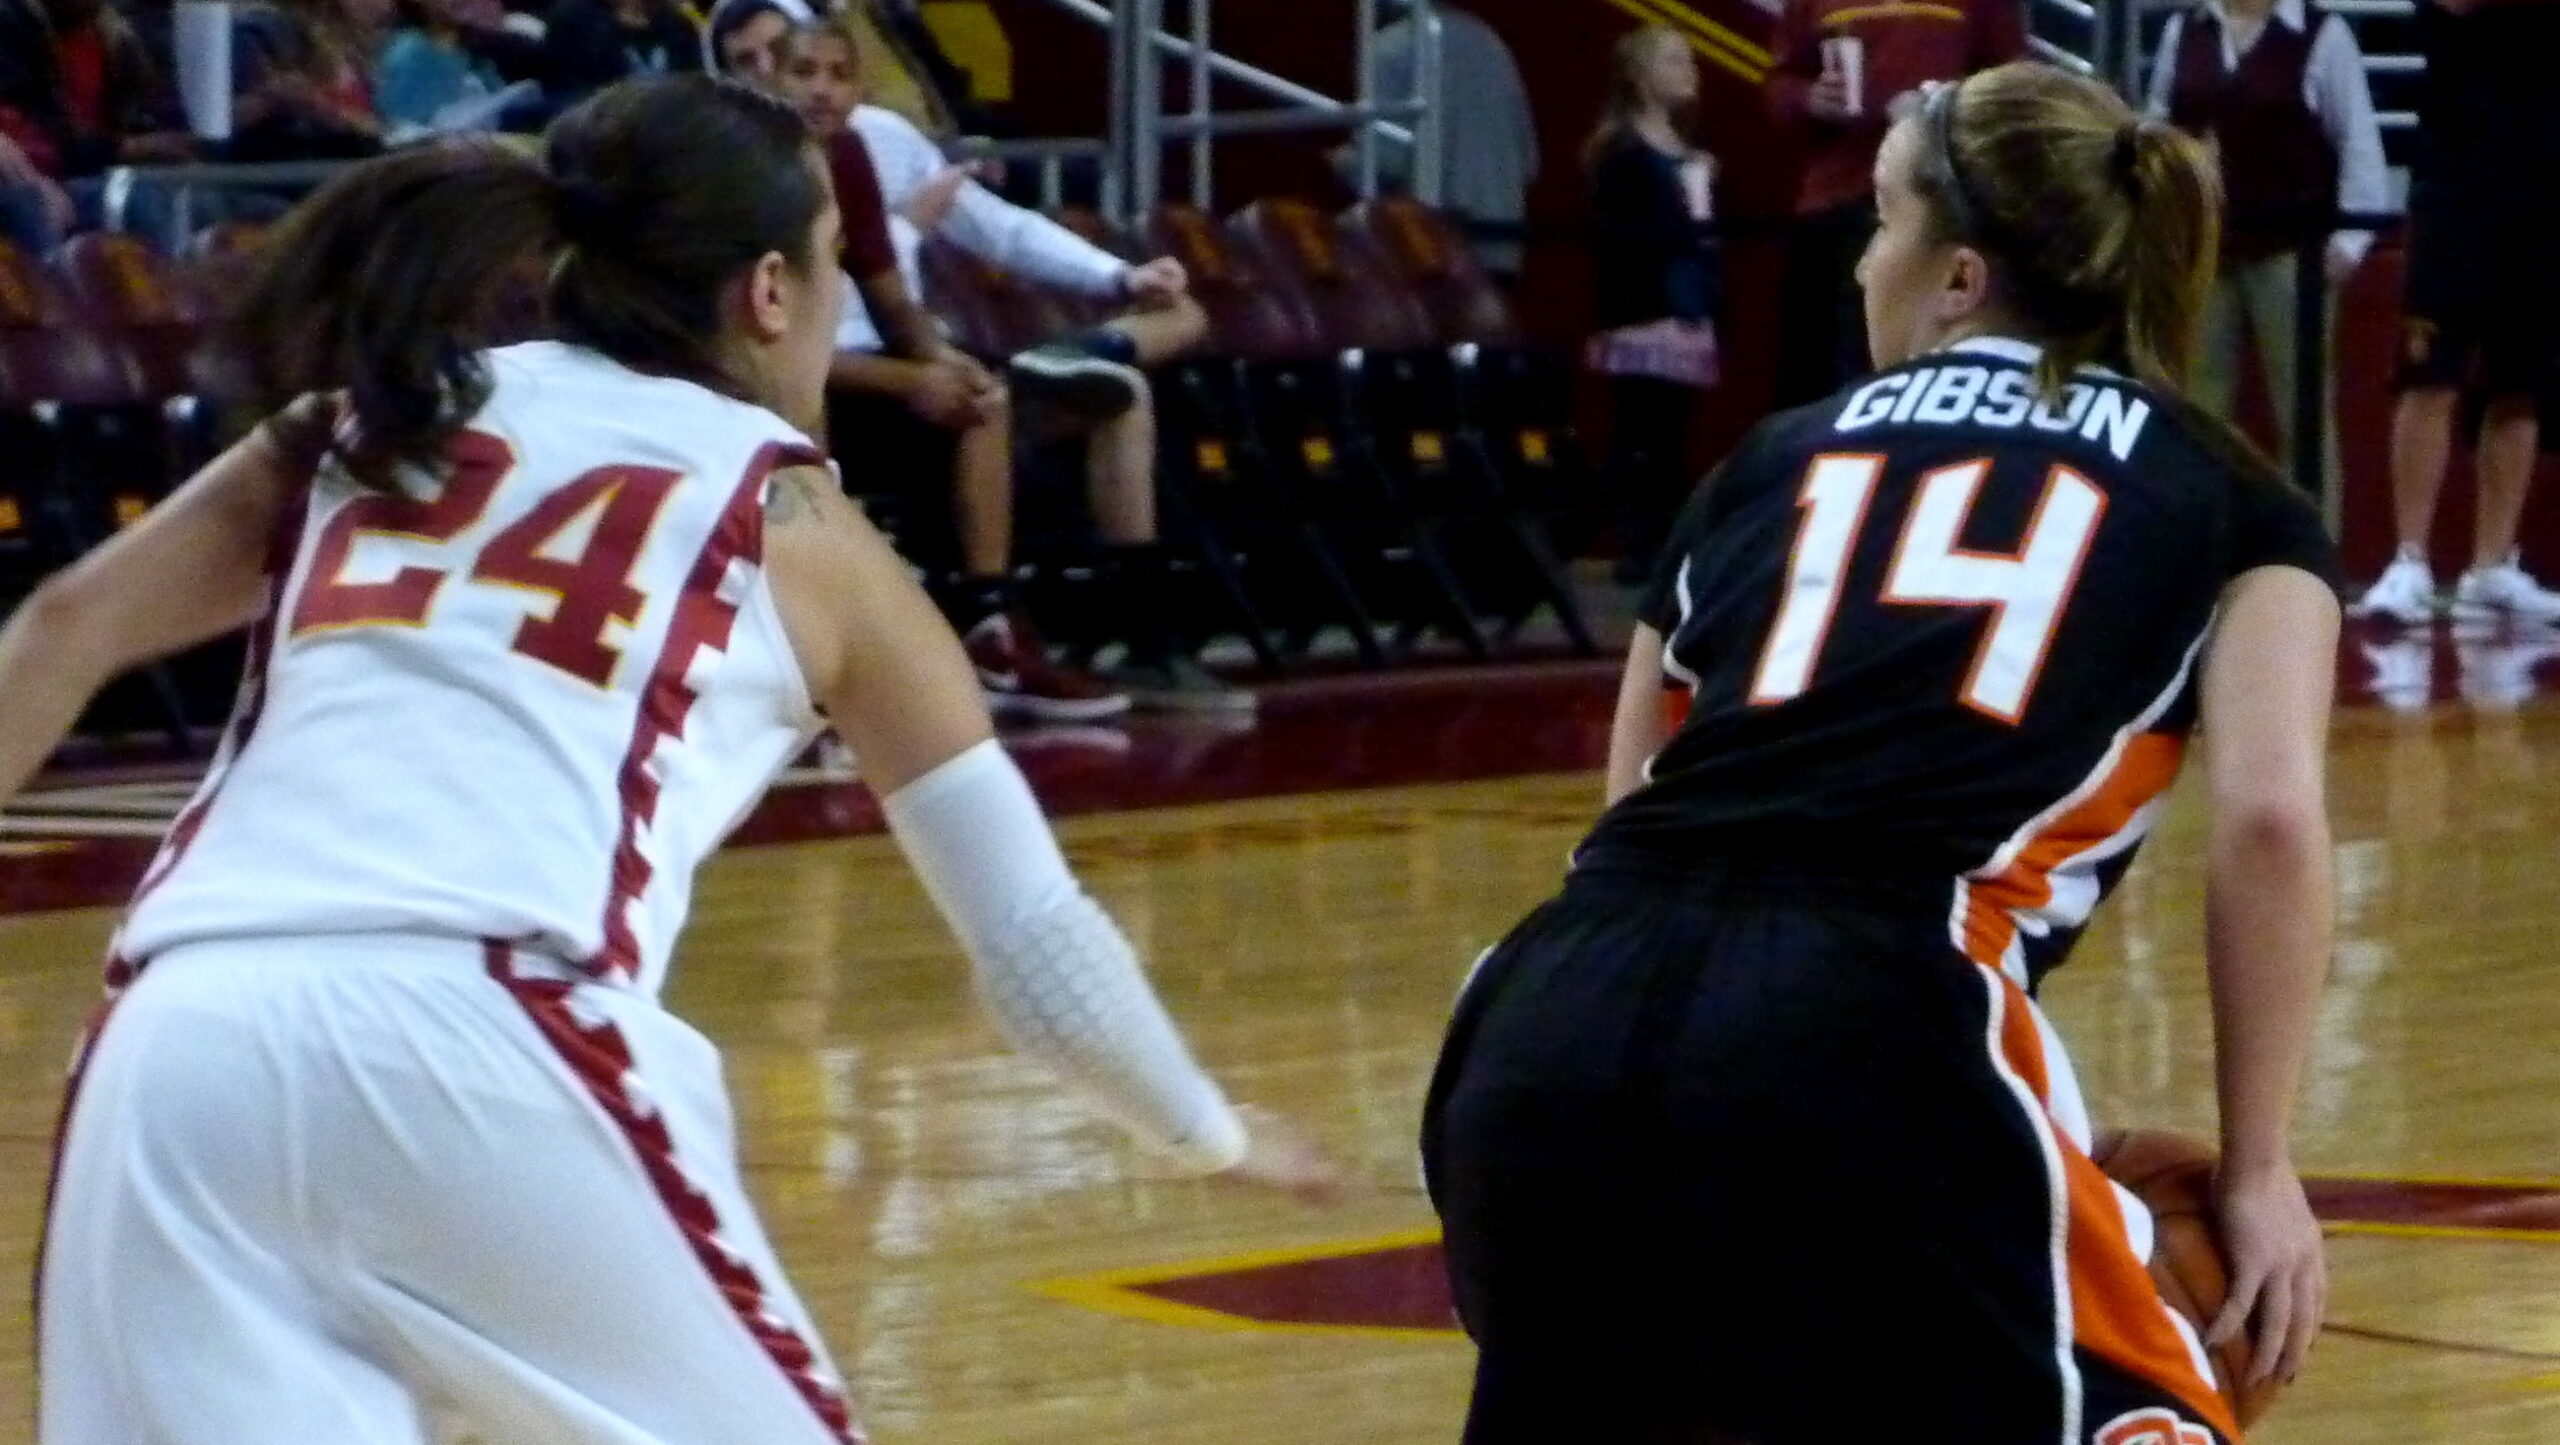 Pac-12 Updates: Oregon State downs USC in overtime, weekend scores and the week ahead